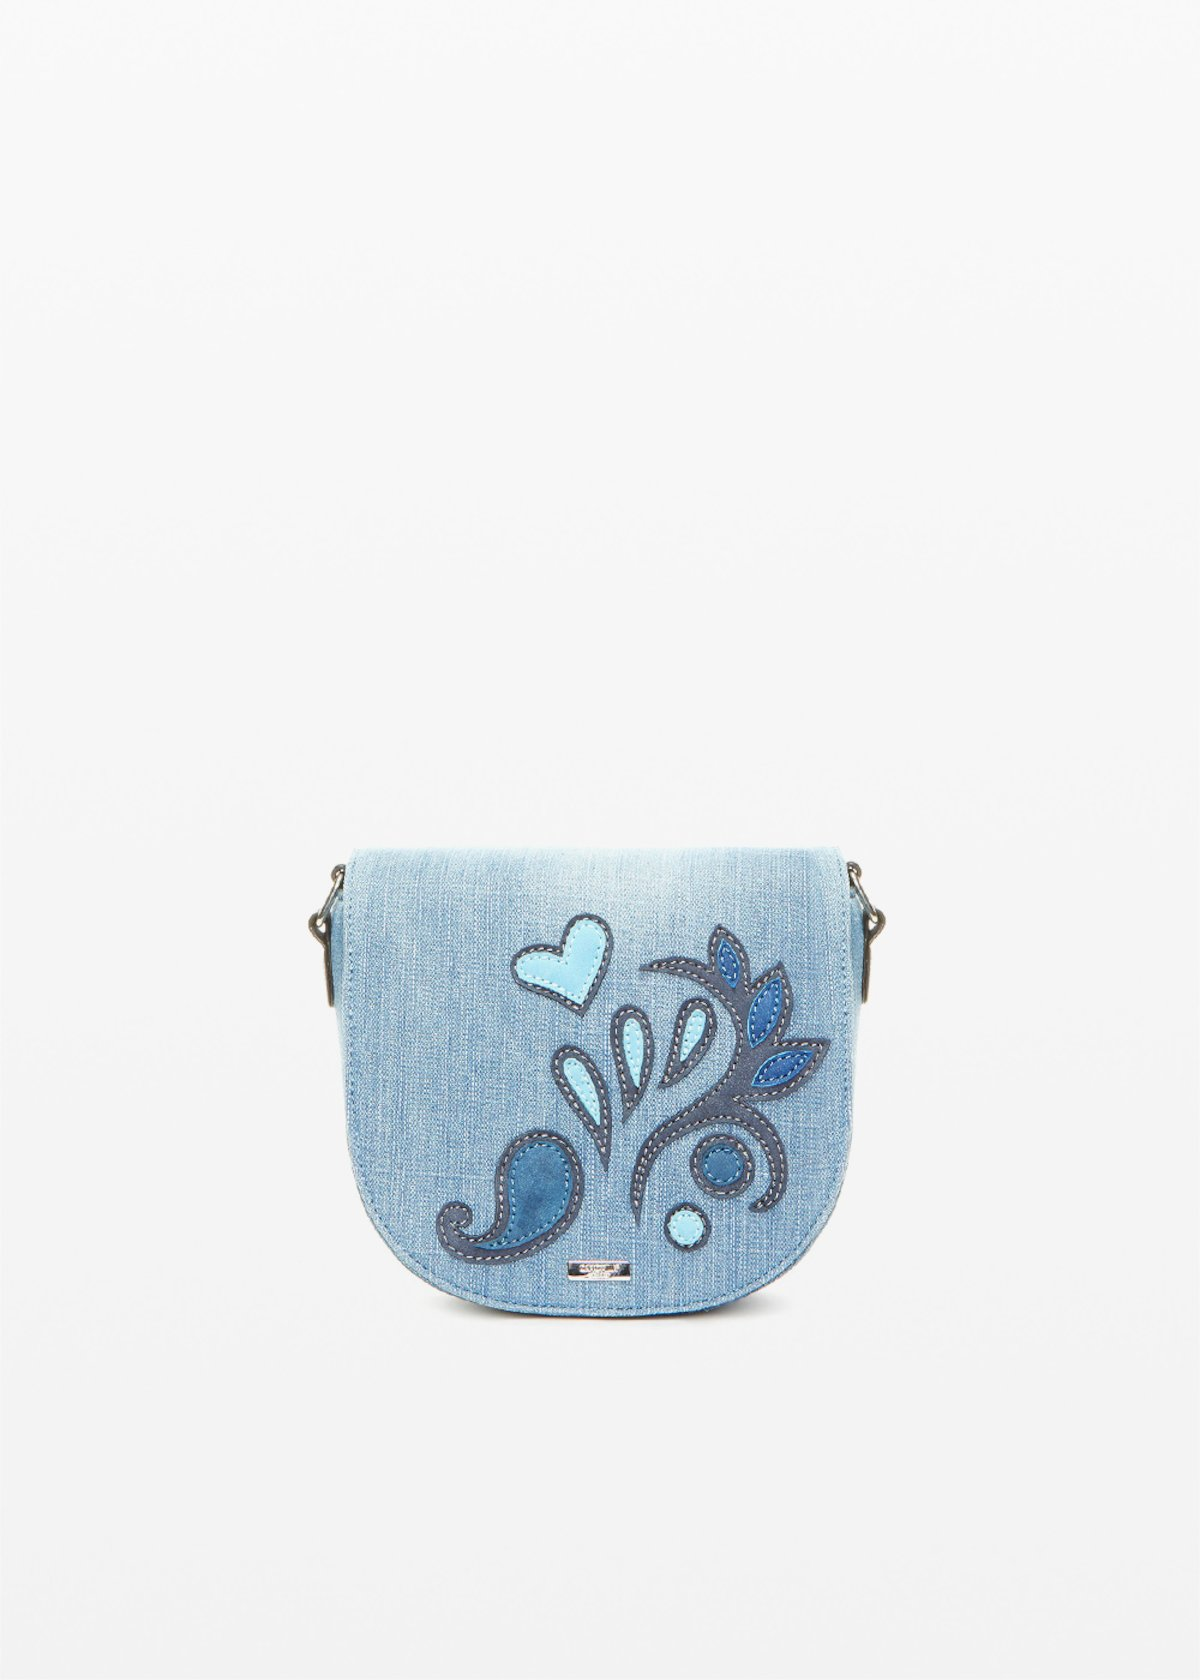 Blerry Crossbody bag denim effect with flower patch - Blue - Woman